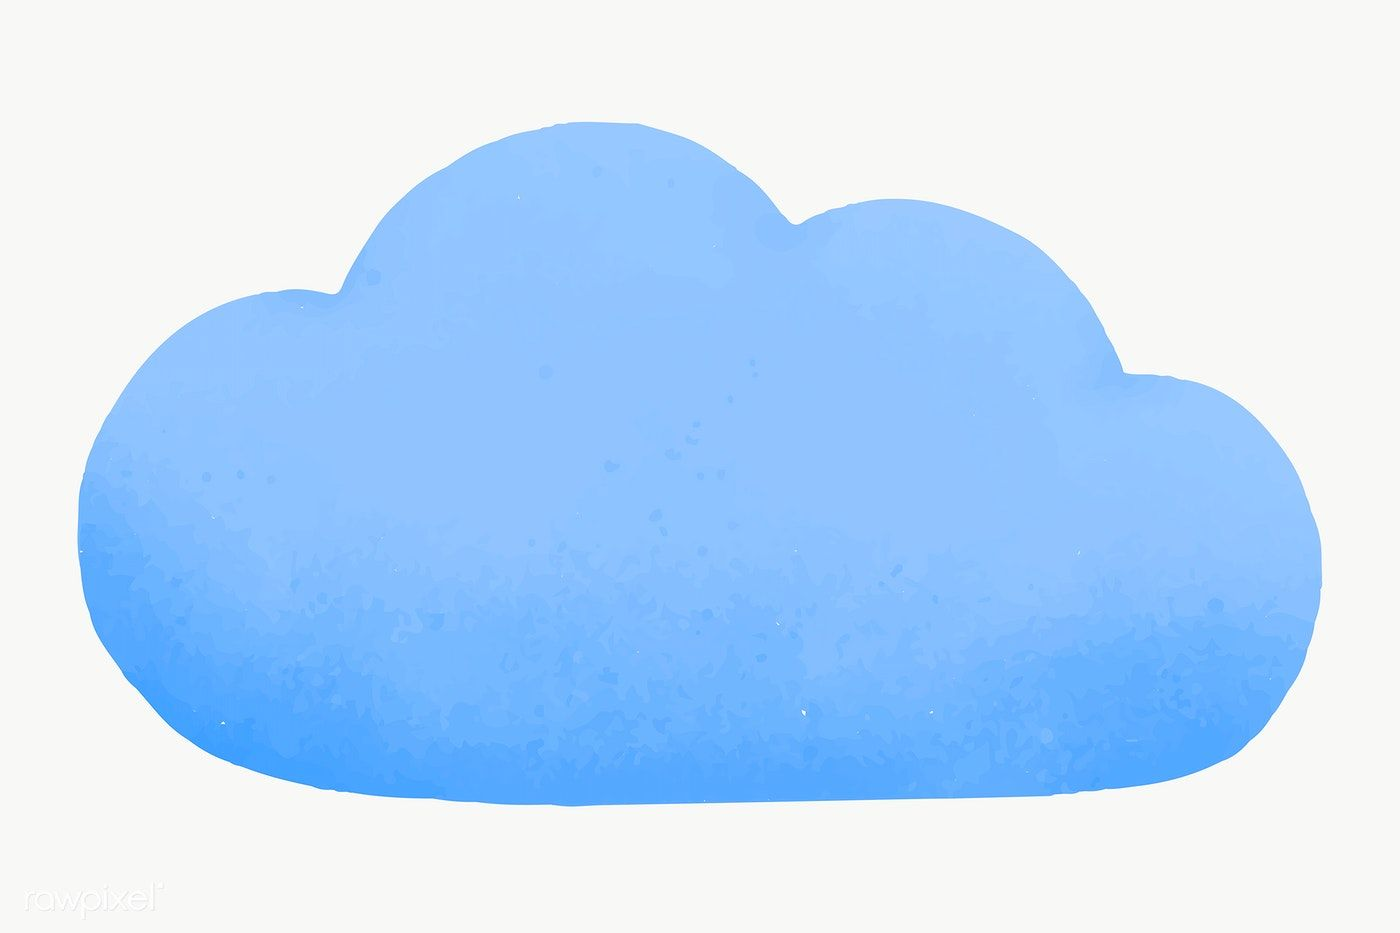 Download Premium Png Of Blue Cloud Computing Social Media Transparent Png Cloud Computing Cloud Computing Technology Social Media Icons Vector